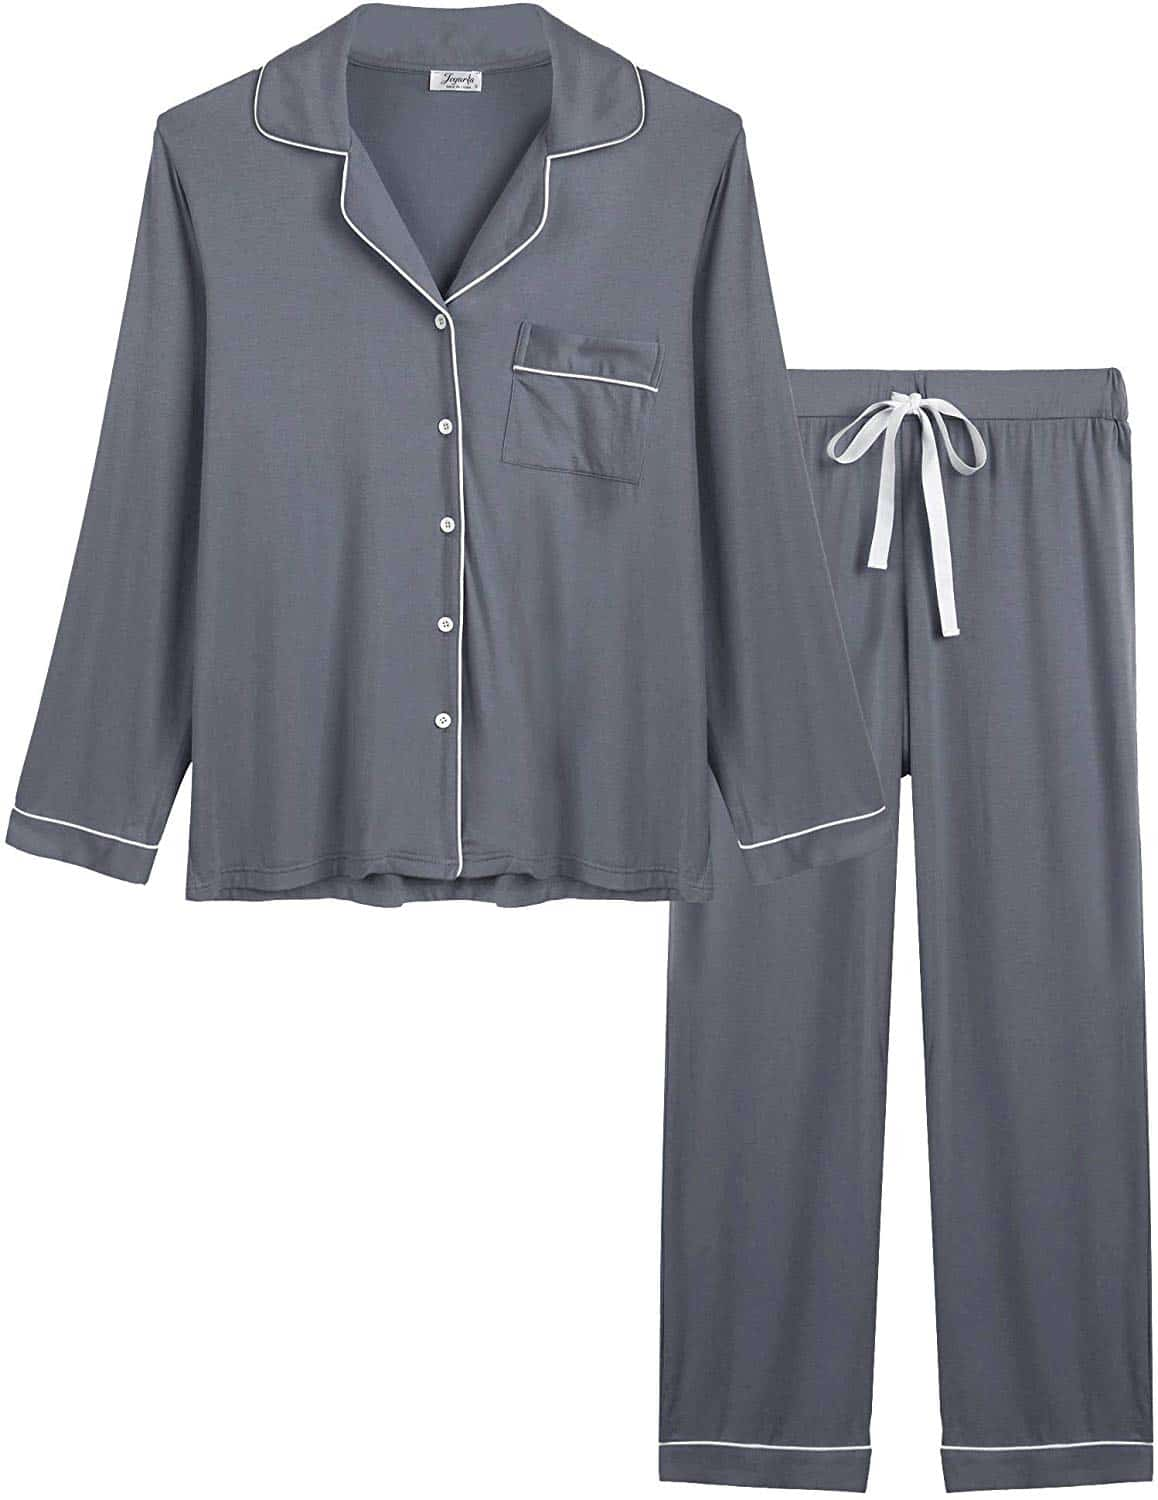 Oprah's Favorite Things Alternatives Bamboo Pajamas